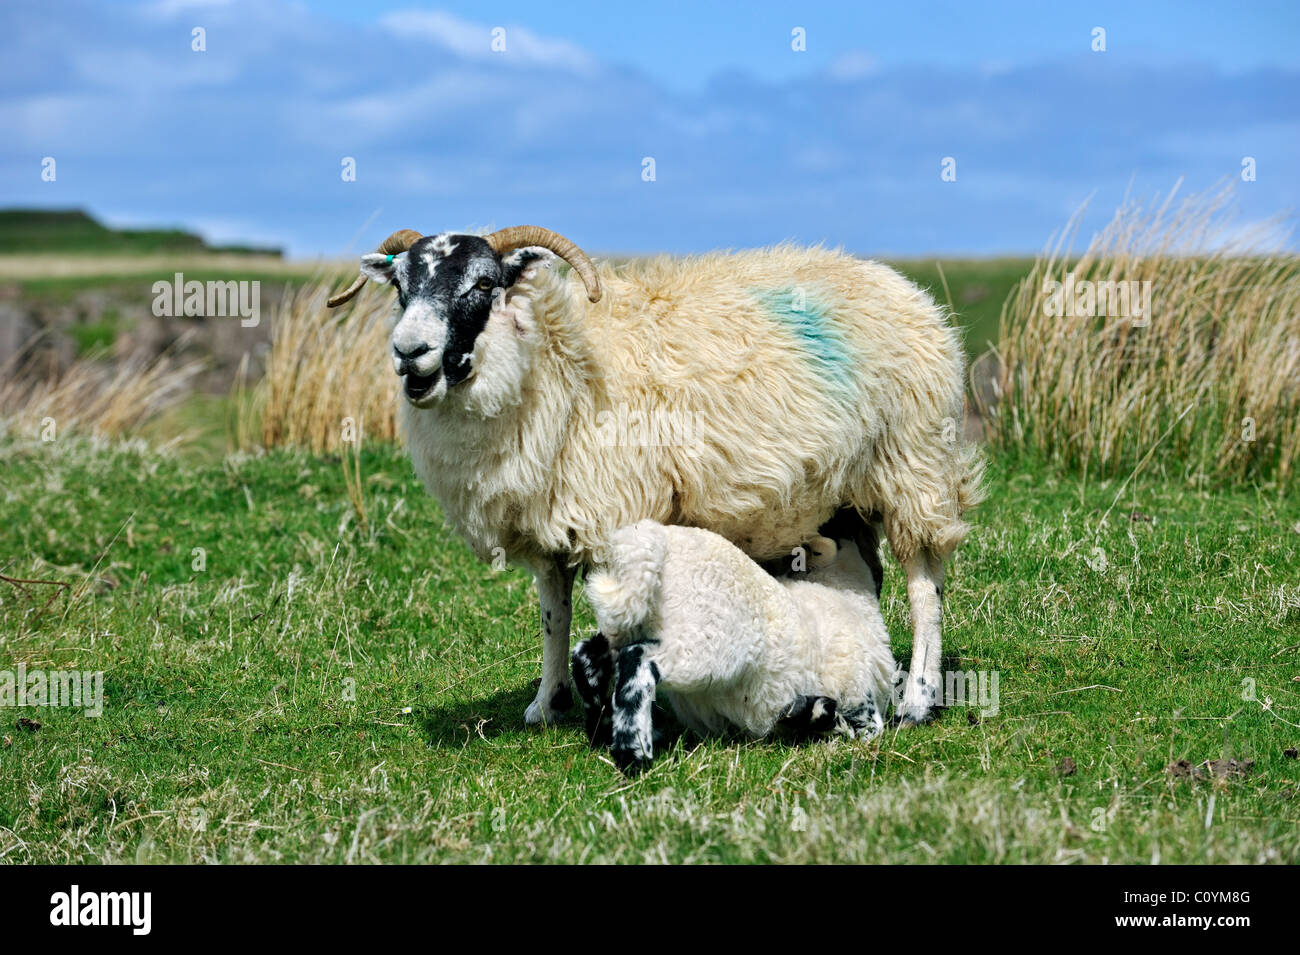 Scottish Black Faced / Blackface Sheep (Ovis aries) ewe suckling lamb in field in the Highlands, Scotland, UK - Stock Image